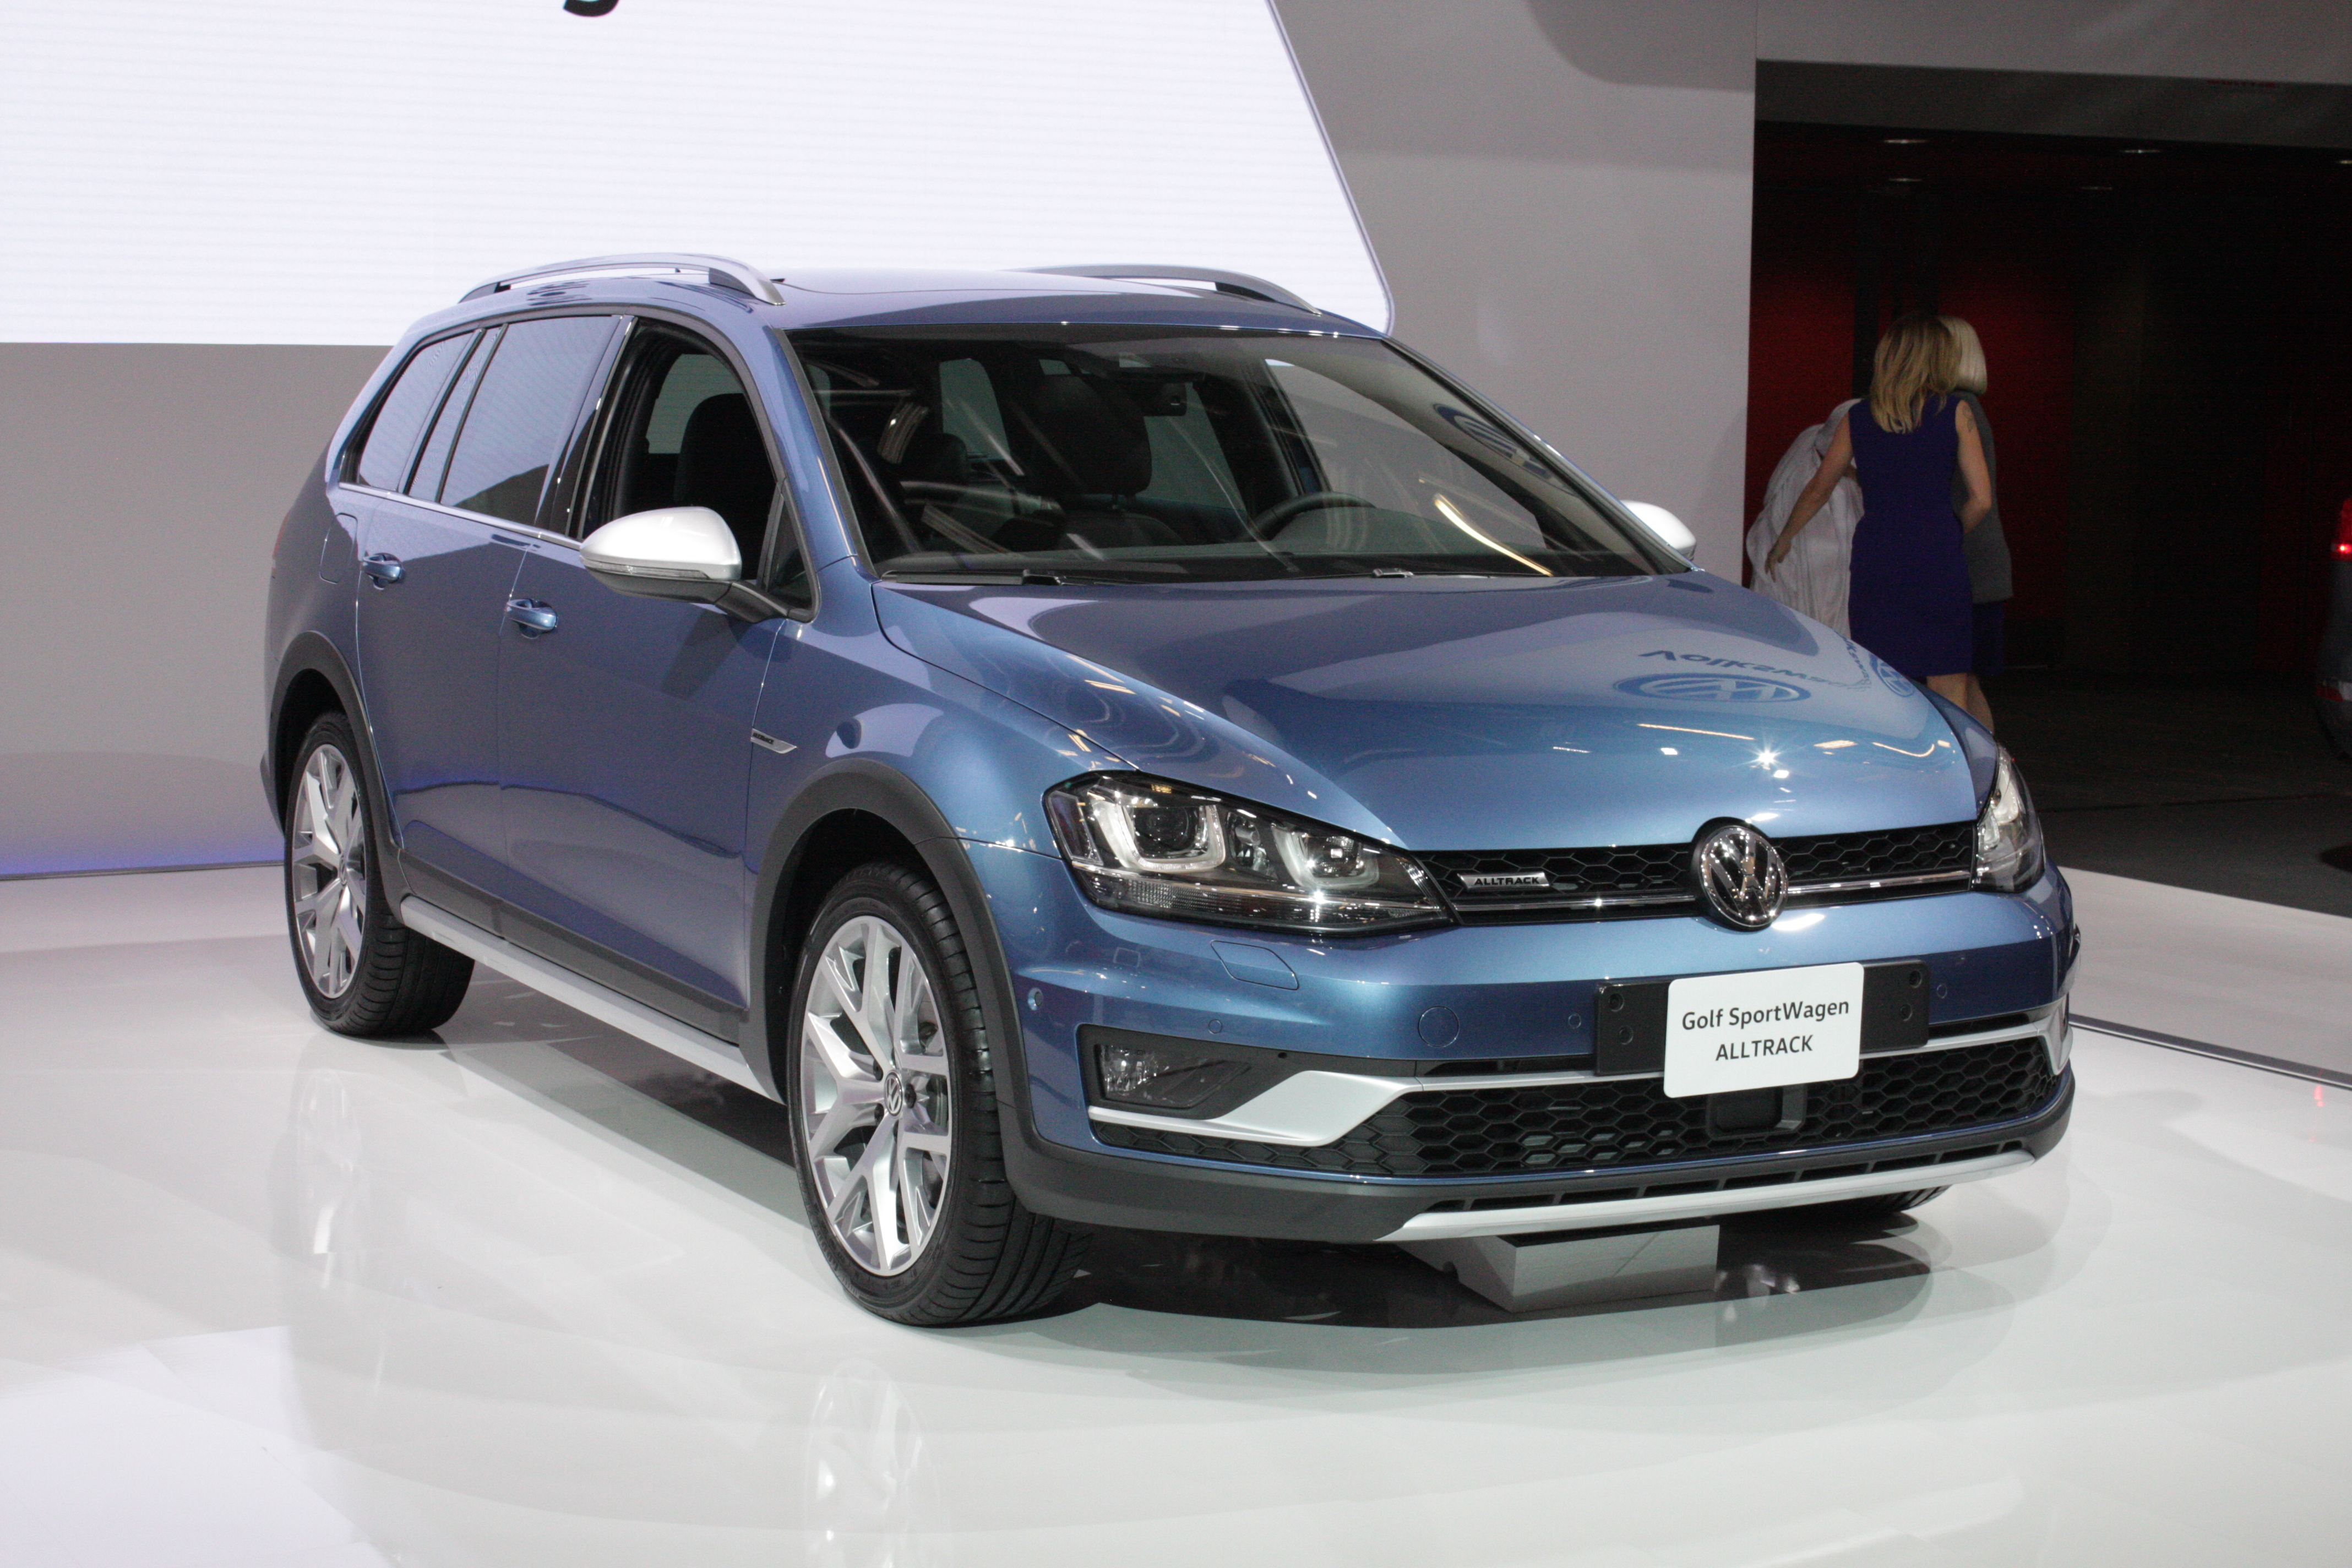 ... and the Golf Sportwagon Alltrack, which adds all-wheel drive to the compact wagon that boasts interior space to rival some mid-size crossovers.